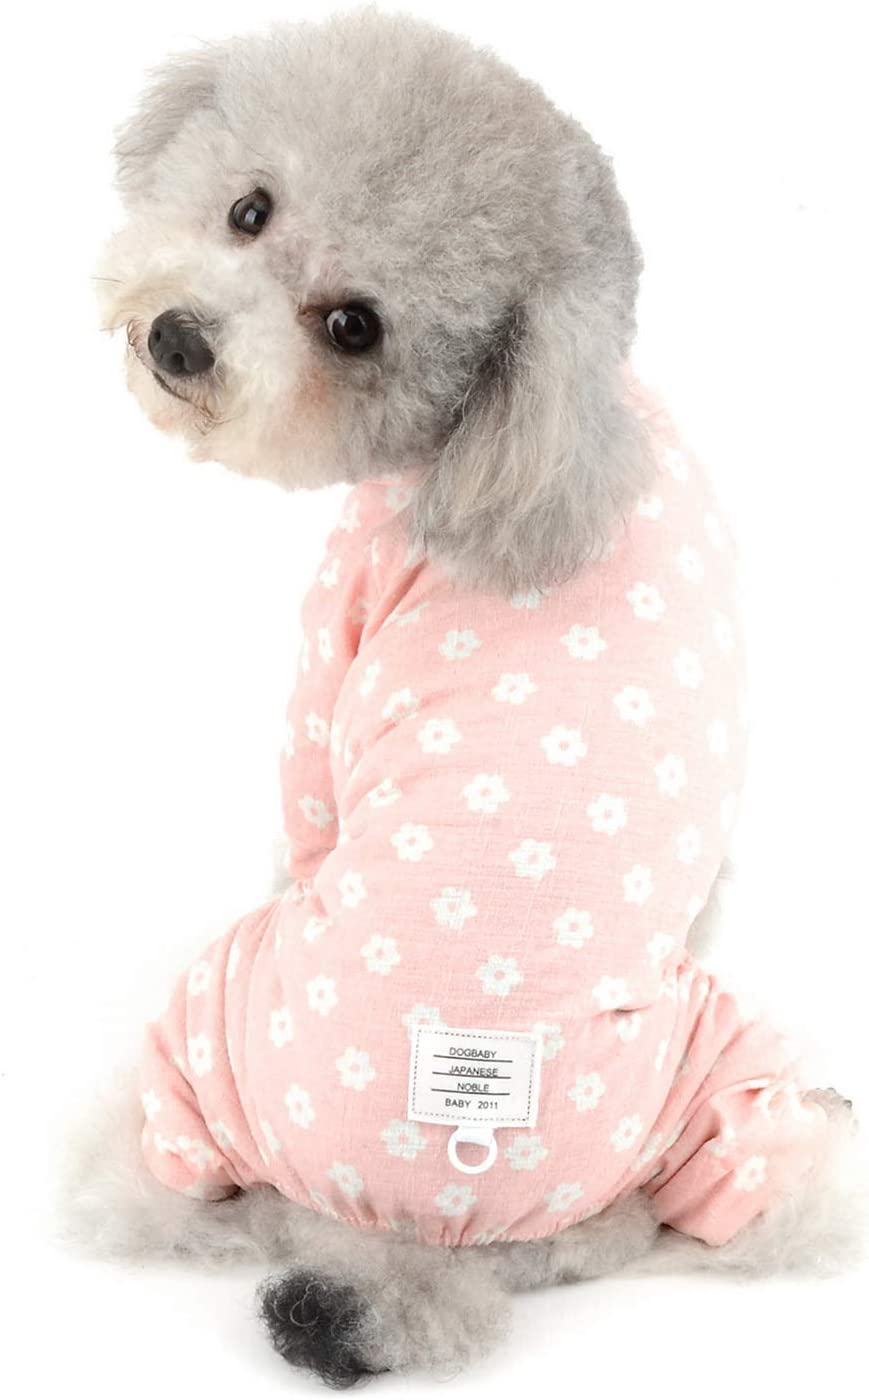 Puppy Dog Pajamas,Pet Sleepwear Shirt Dog Pajamas Soft Puppy Cat Clothes Dogs Clothing Pet Outfits with Lapel and Button Design